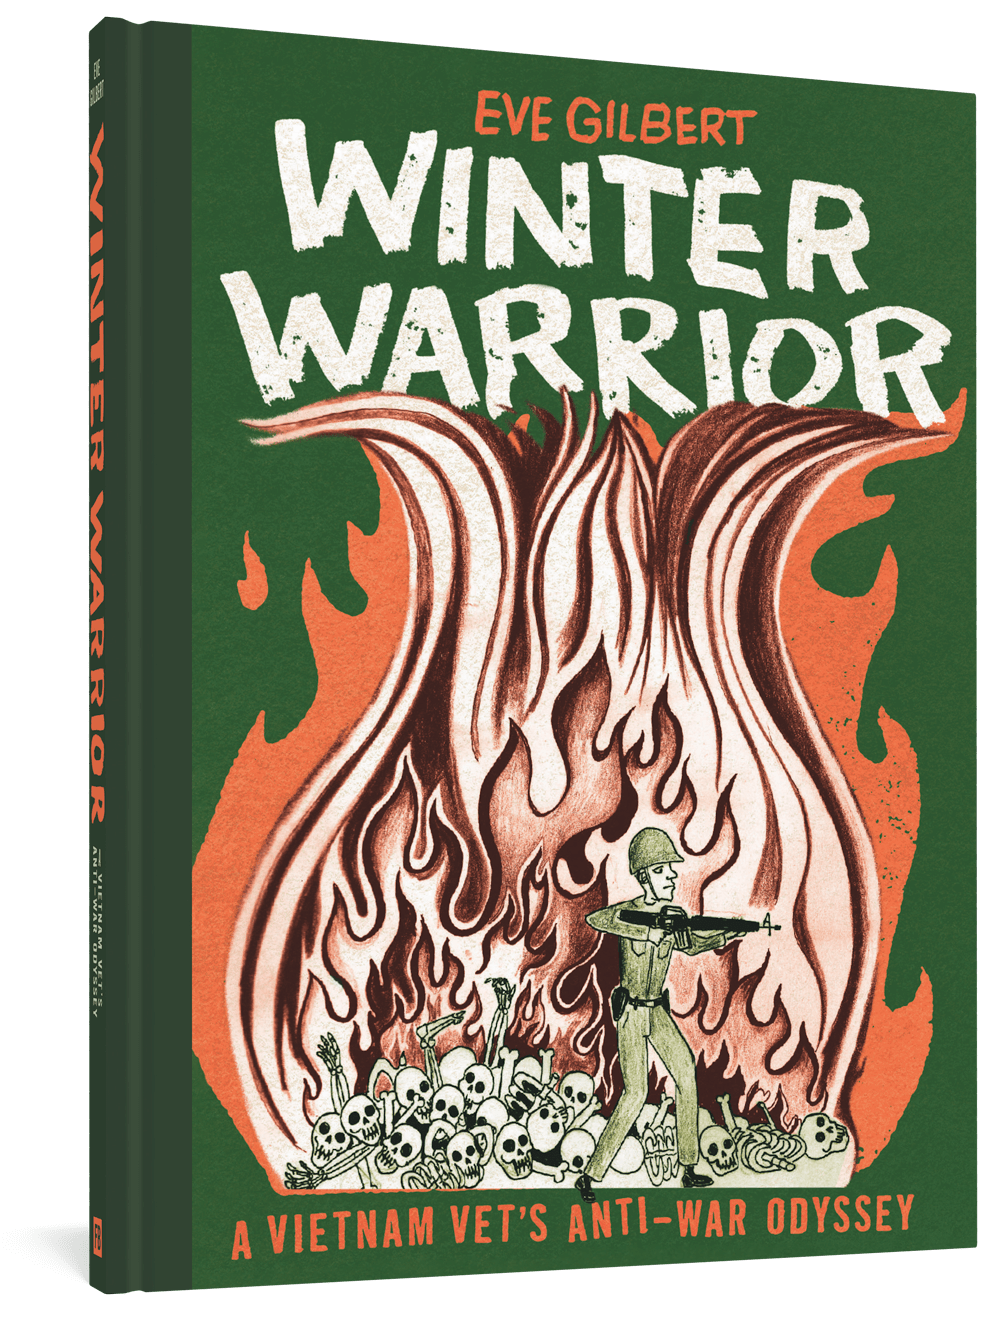 Winter Warrior: A Vietnam Vet's Anti-War Odyssey